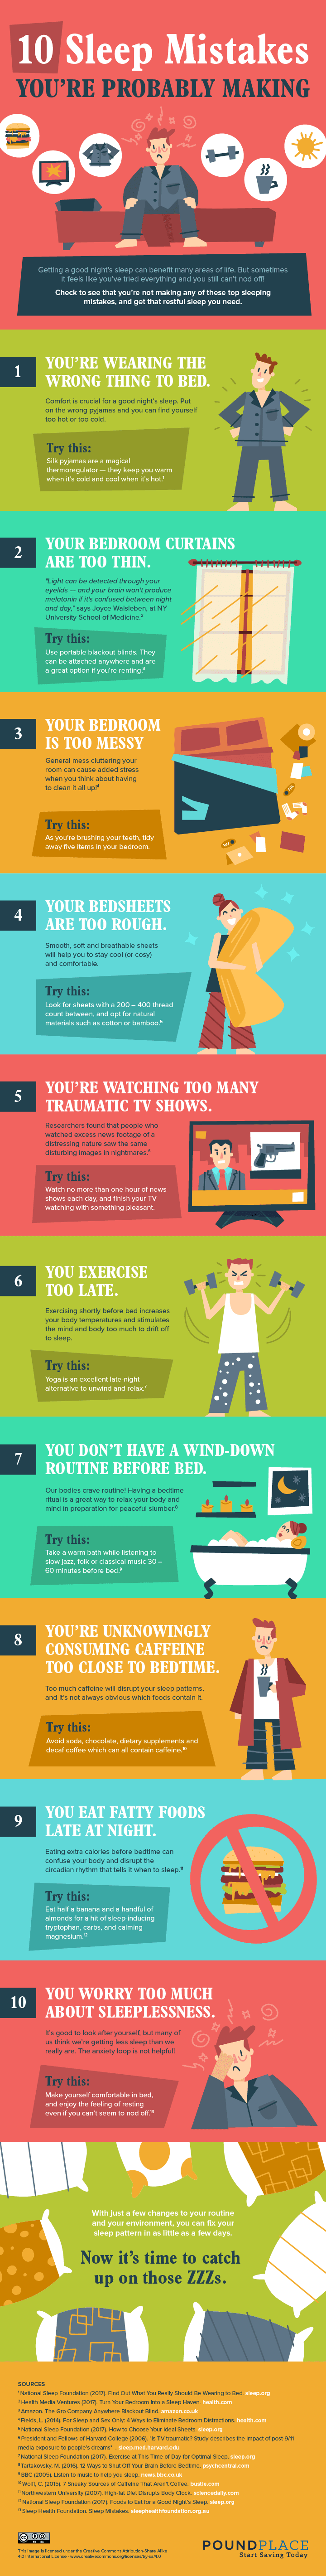 10 Sleep Mistakes You're Probably Making - #infographic